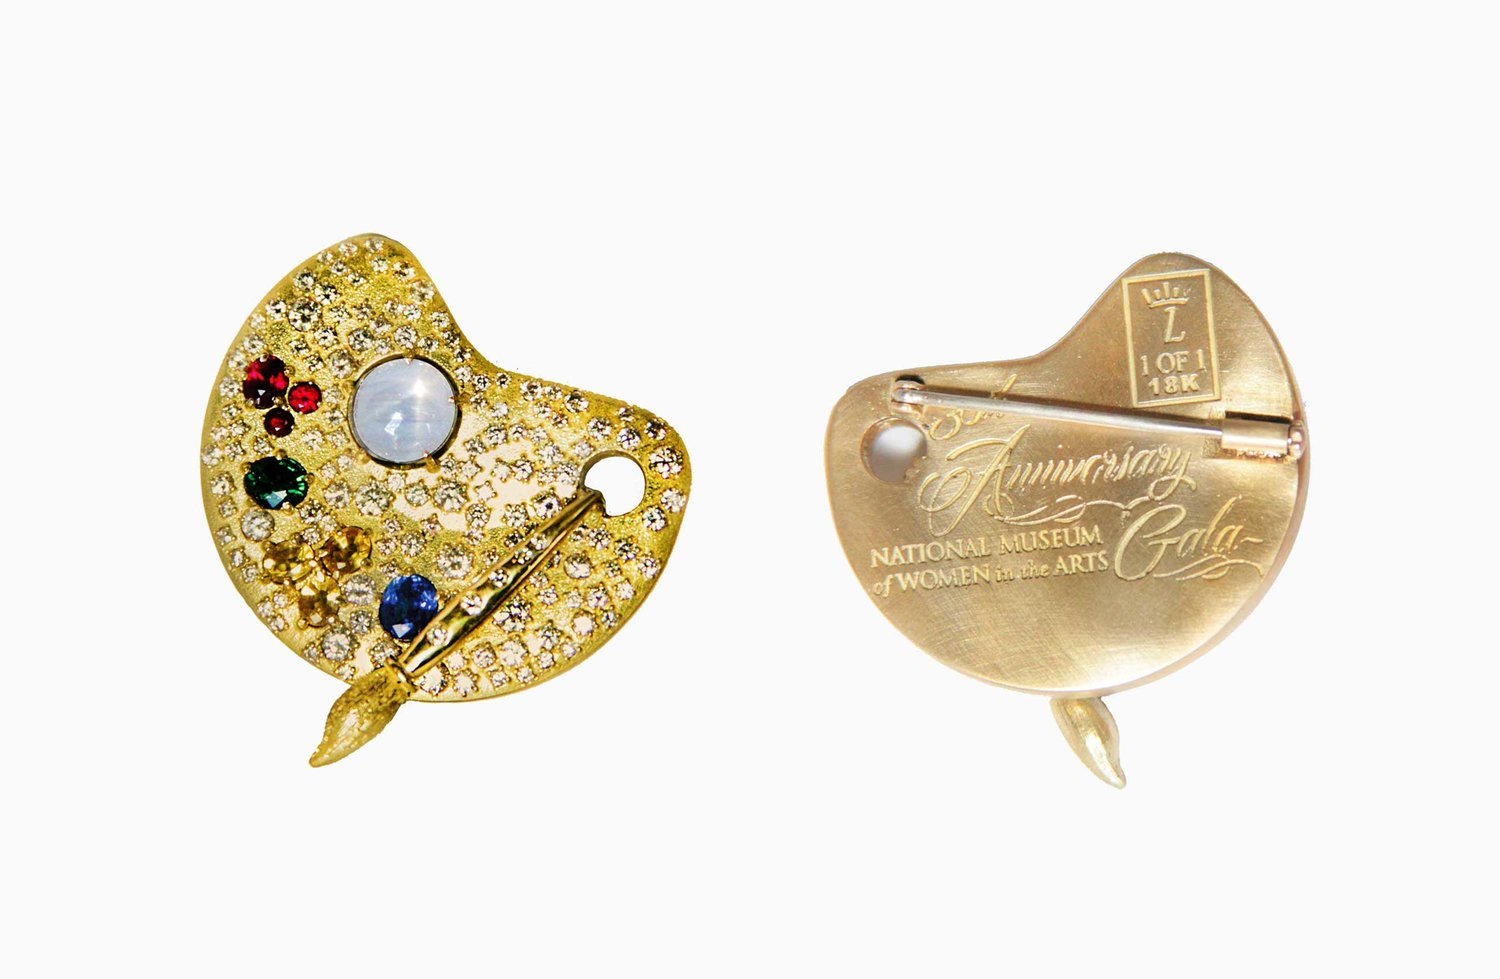 c5efb4b19 National Museum of Women In the Arts | Aspen Jewelry, Katherine ...